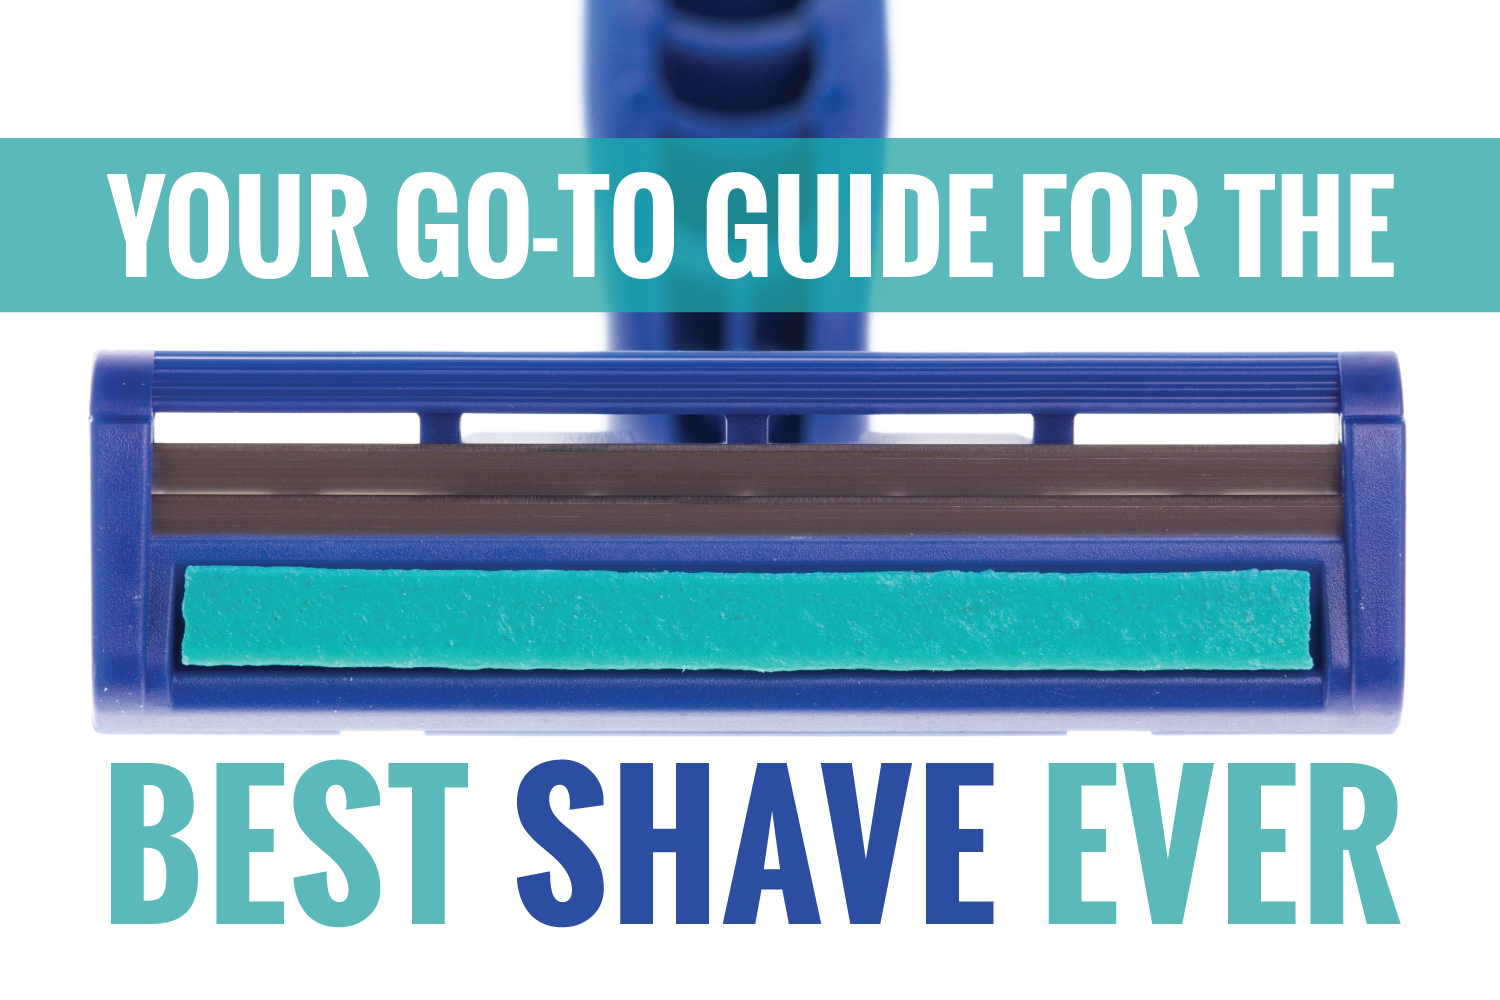 Your Goto Guide For The Best Shave Ever